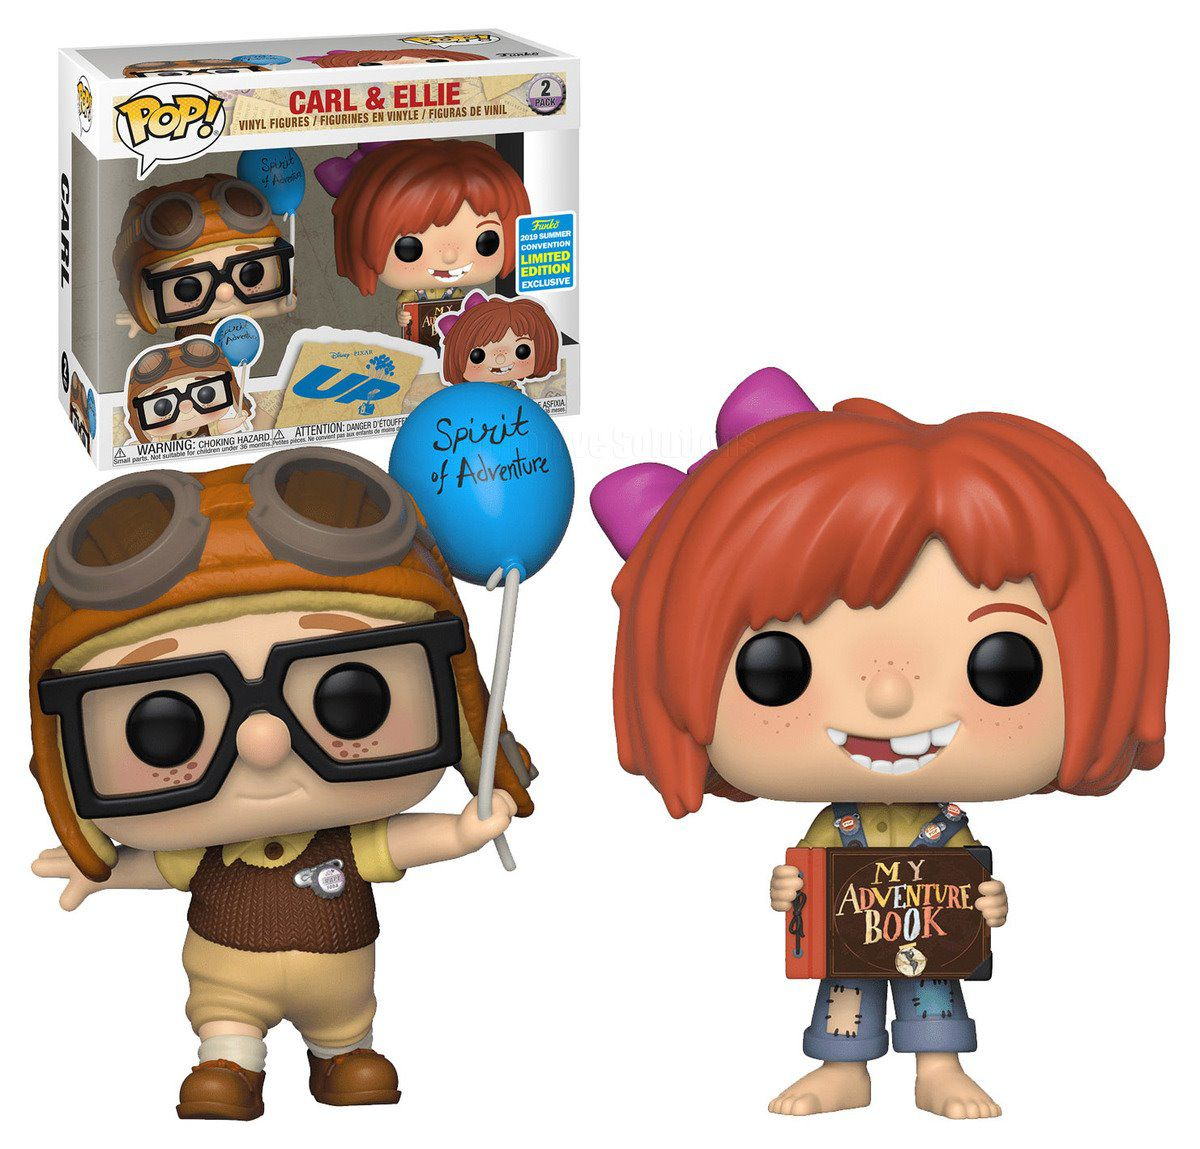 Pop! Carl & Ellie: Up Altas Aventuras (Exclusivo SDCC 2019) #2 - Funko